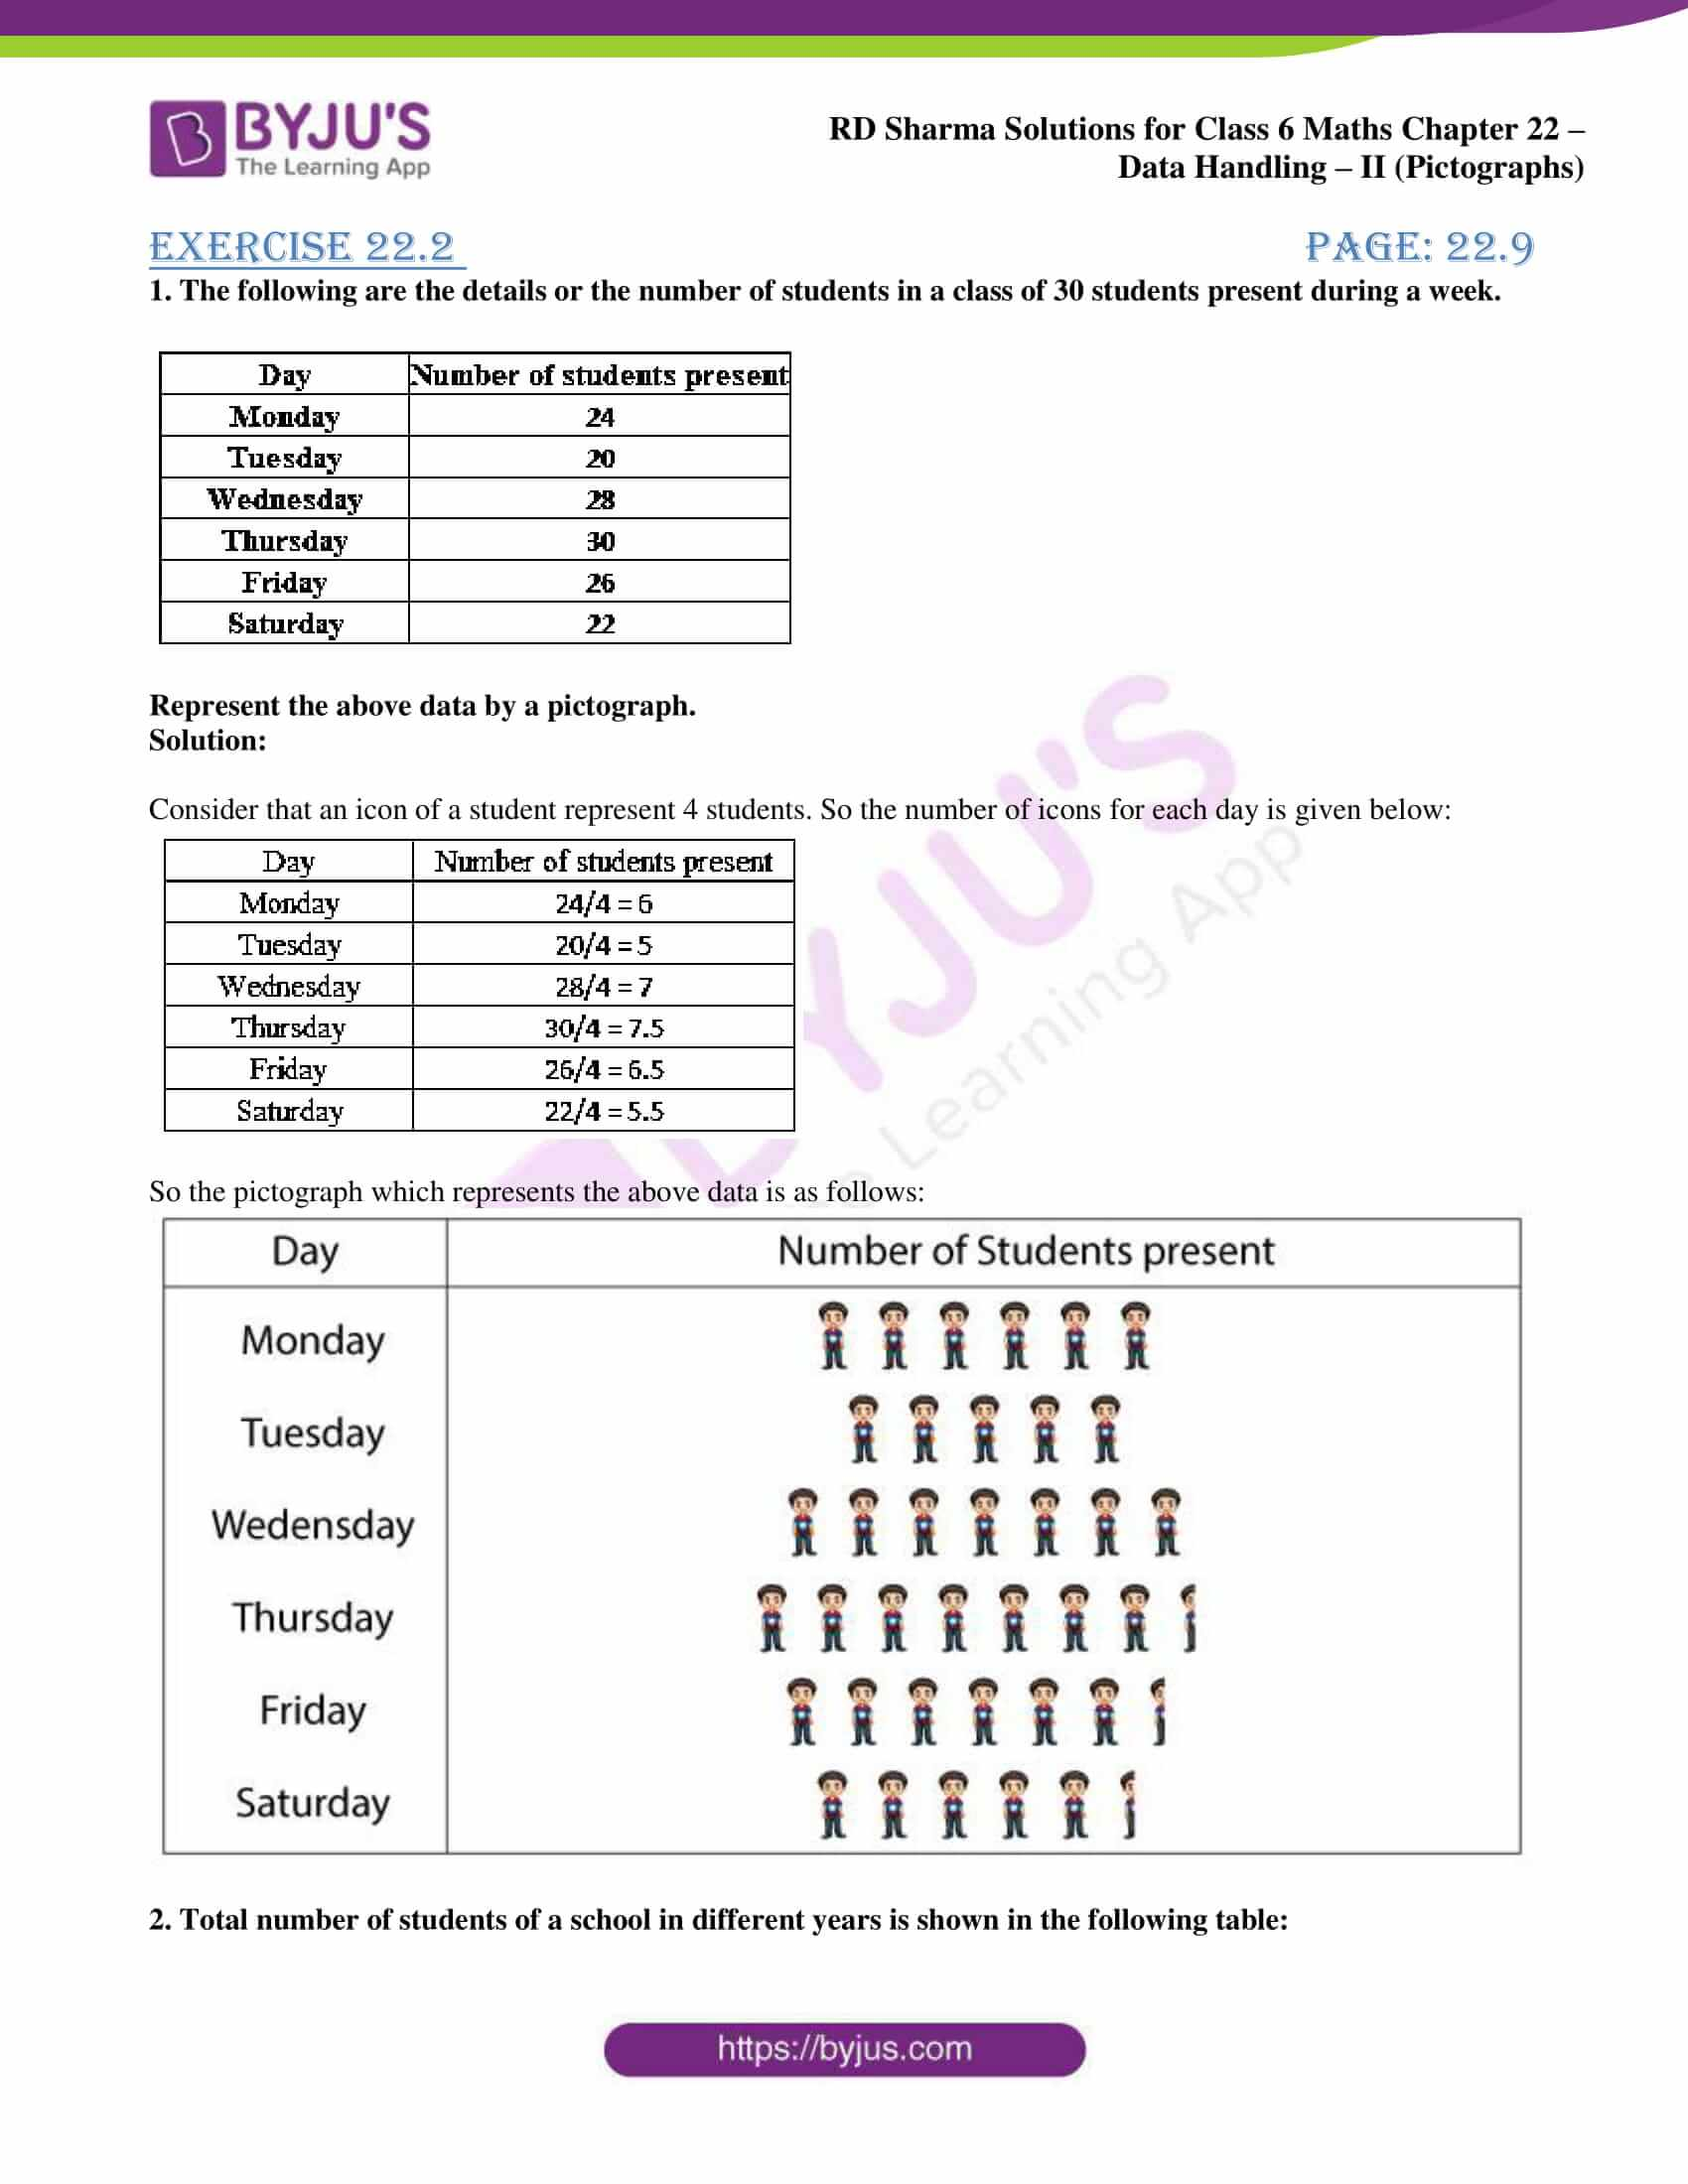 rd sharma solutions nov2020 class 6 maths chapter 22 exercise 2 1